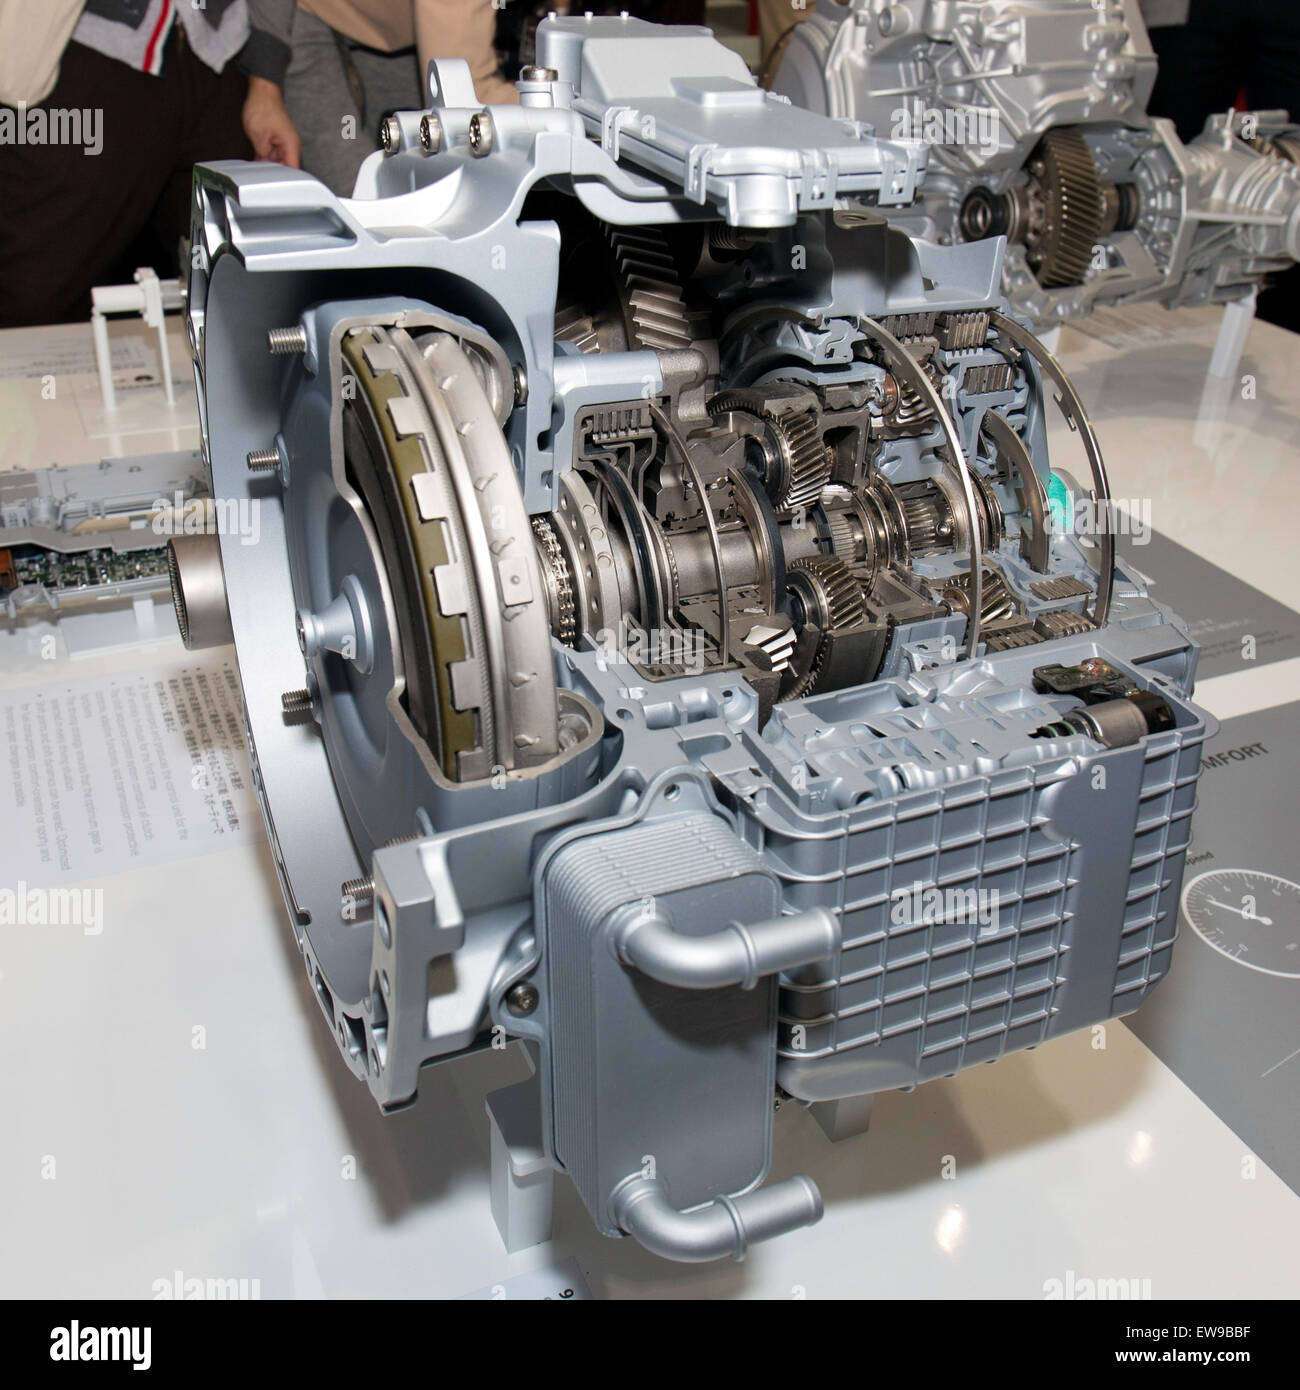 ZF 9-speed automatic transmission front-right 2013 Tokyo Motor Show - Stock Image